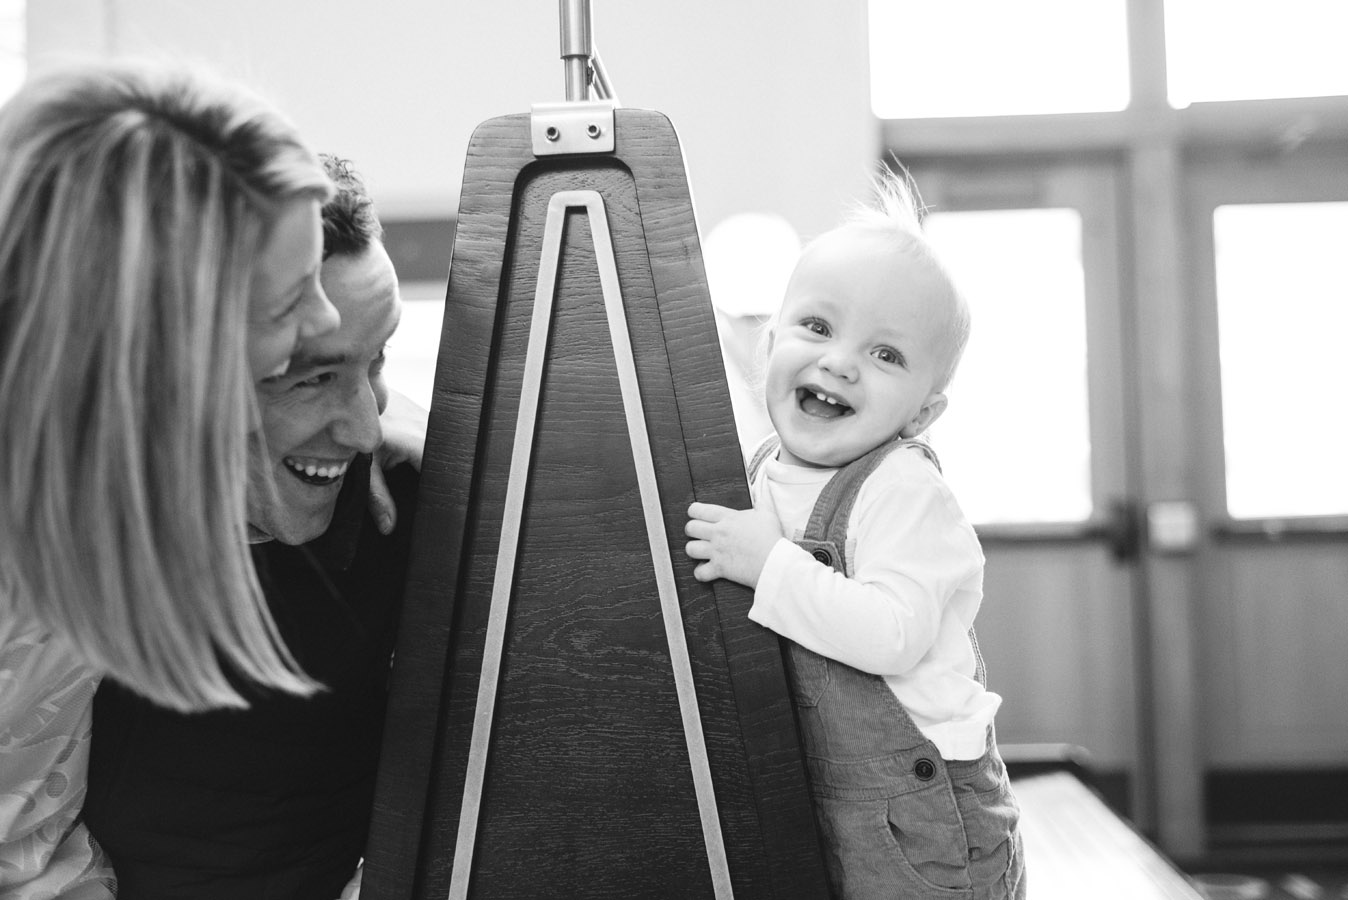 Family Laughs with Little Boy Image